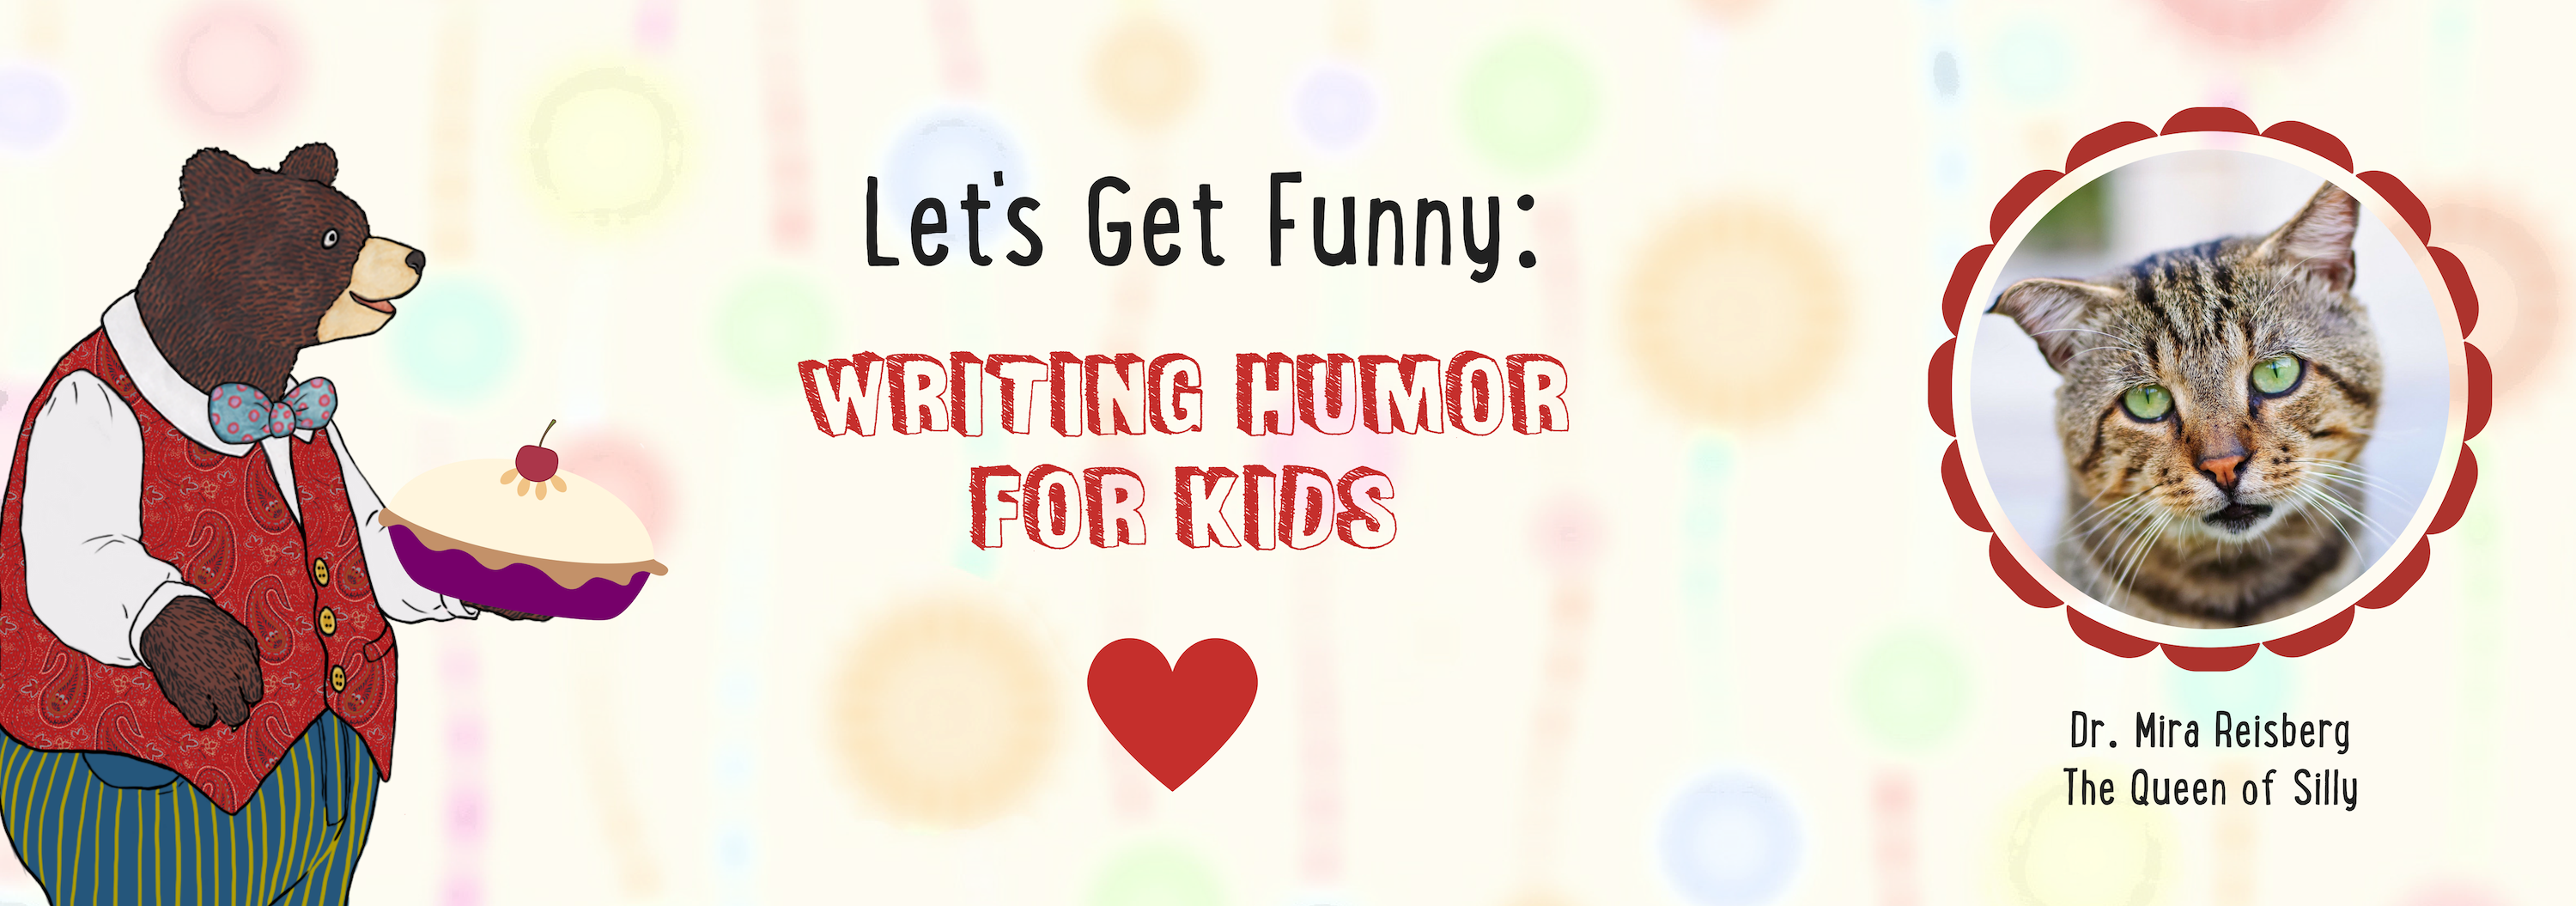 Let's Get Funny Writing Humor for Kids at the Children's Book Academy